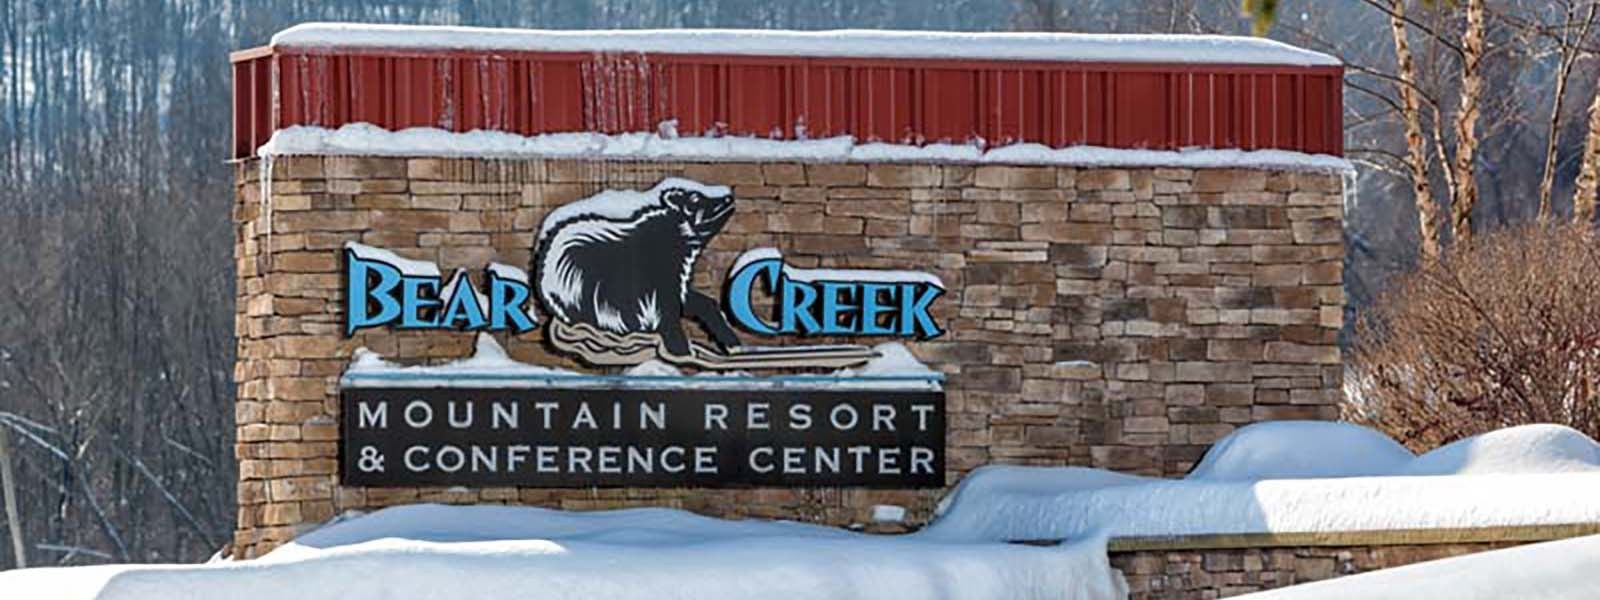 Entry sign to Bear Creek